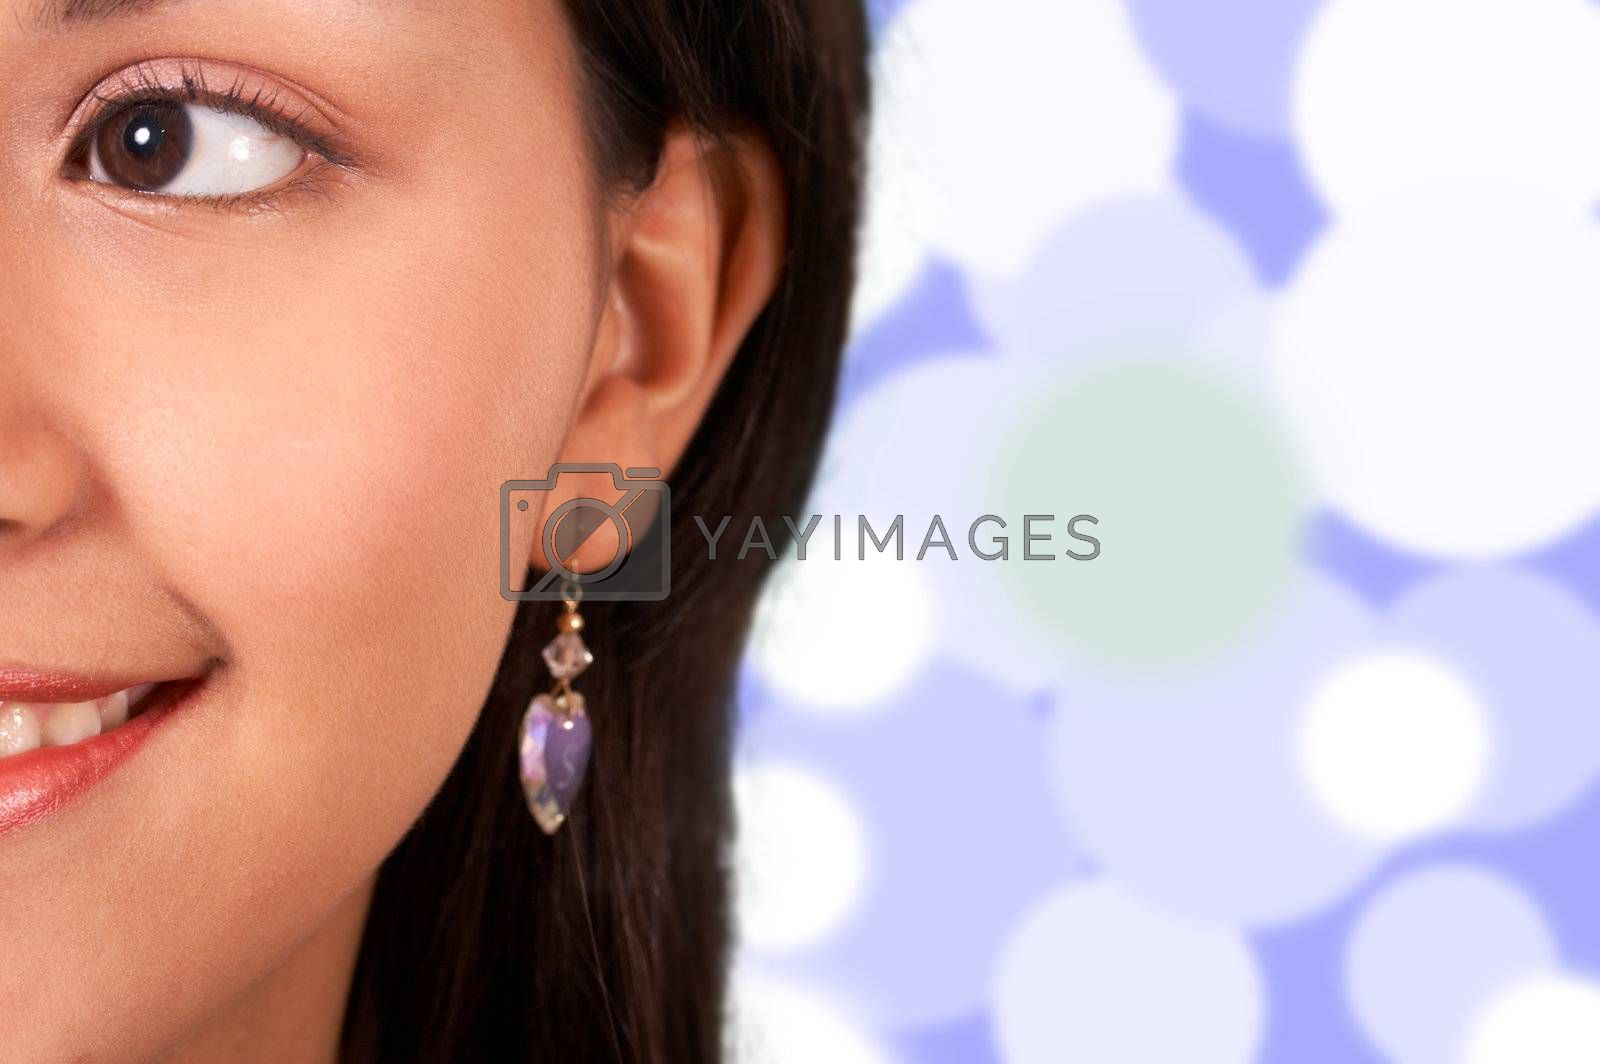 Smiling Girl With Blue And Lights Background